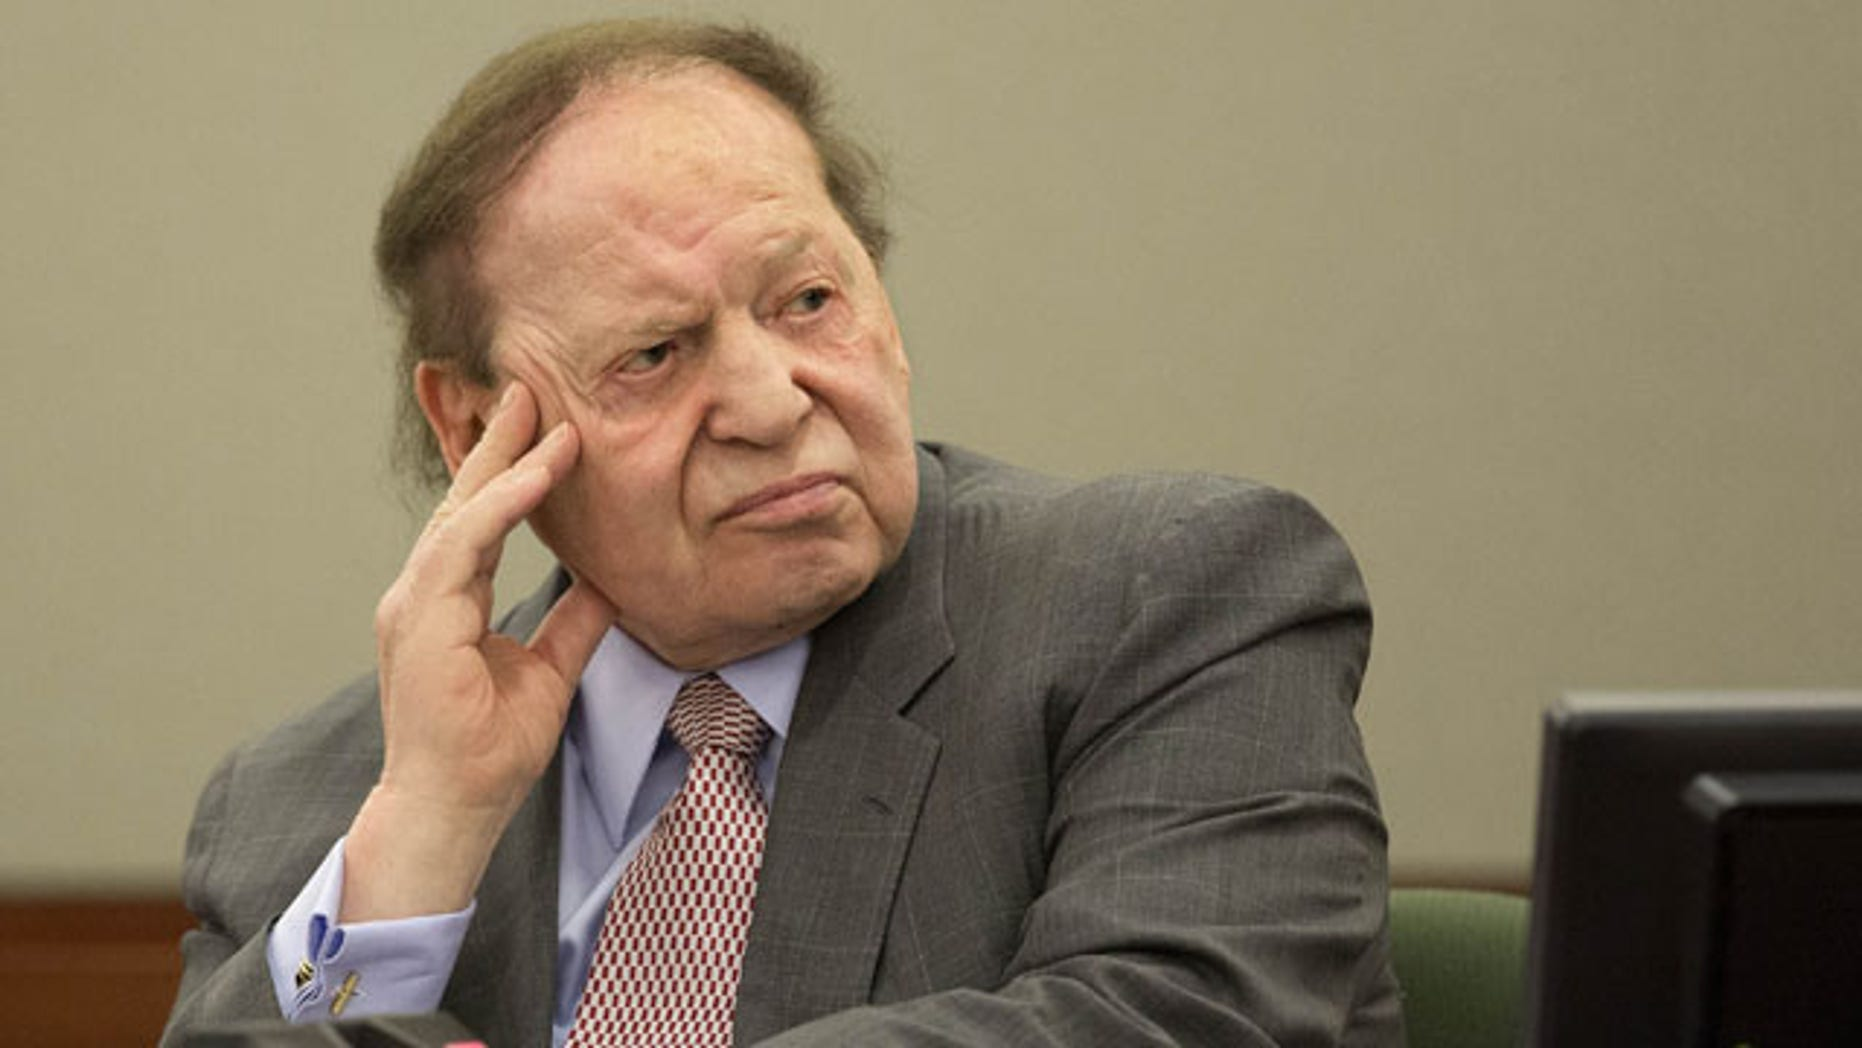 FILE - In this Friday, April 5, 2013, file photo, Las Vegas Sands Corp. CEO Sheldon Adelson testifies in Clark County district court in Las Vegas. (AP Photo)